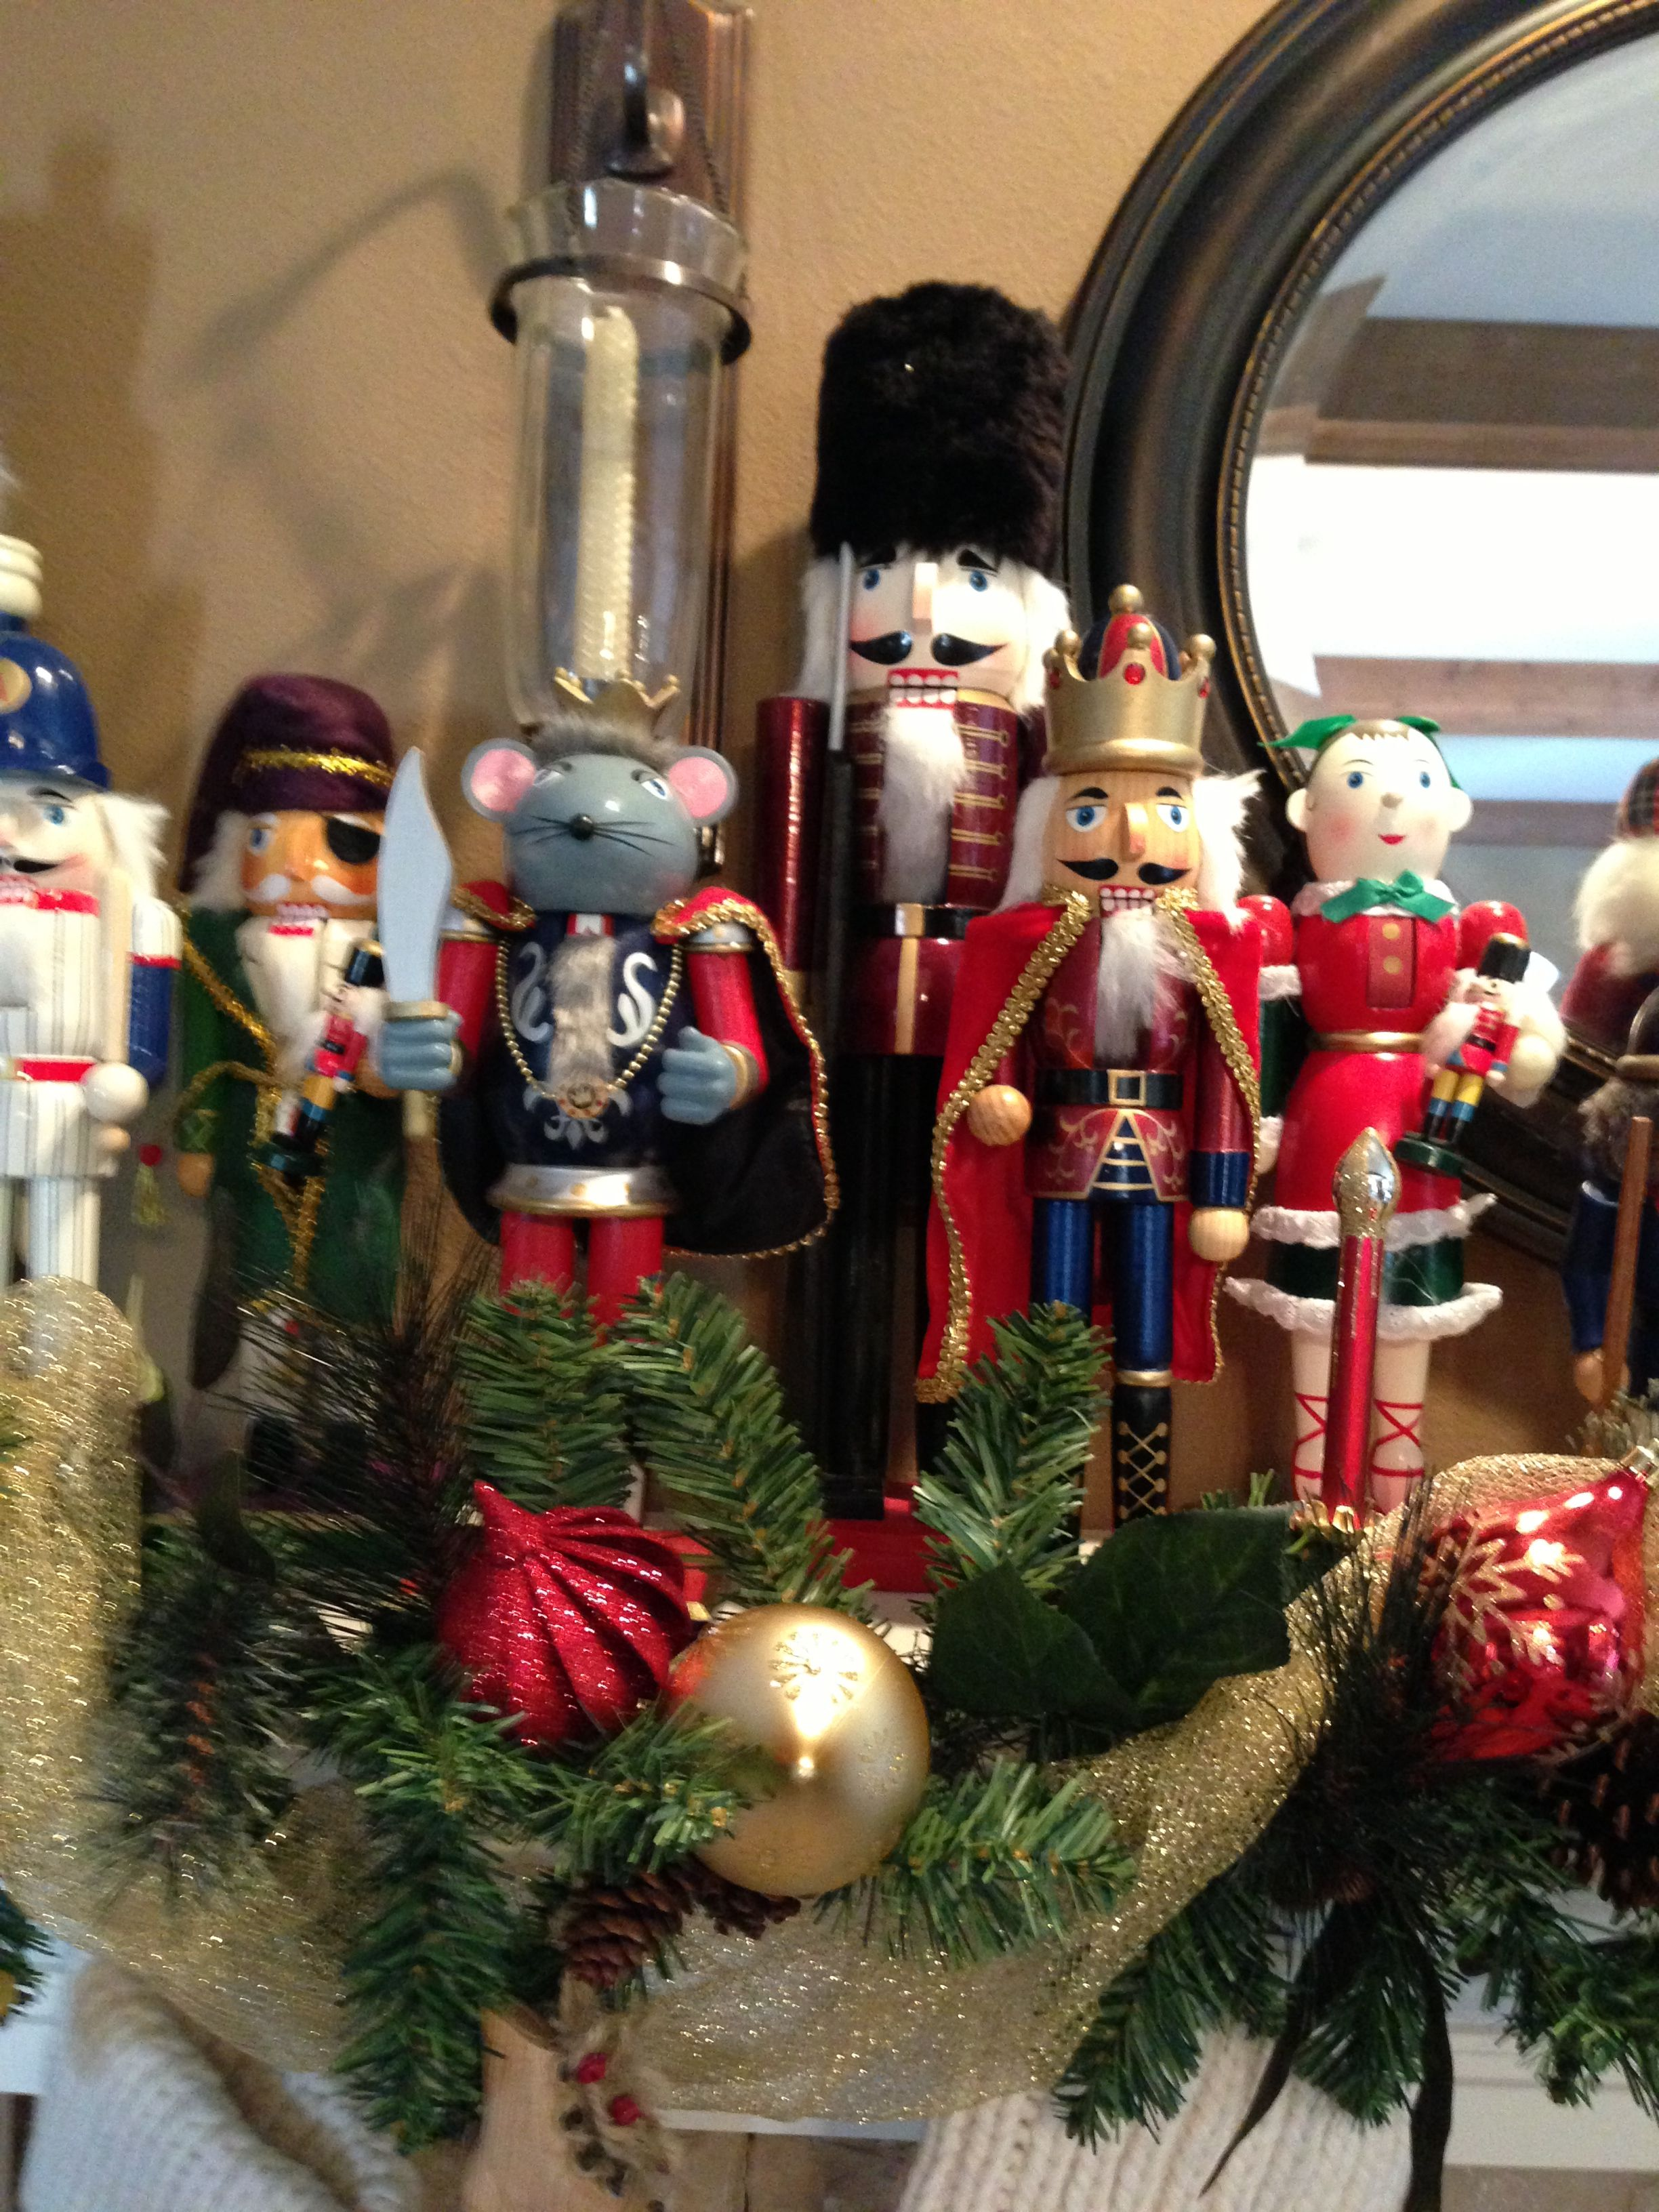 Nutcracker Tradition in our Family - I buy one to remember what my children have done that year ... Baseball - son was the slugger on his team, Mouse - our trip to Disney, king - love of playing Chess, rifle - dove hunting, girl - when we had a foster child, pirate - love of the Pirates of Caribbean movies... They enjoy waiting to see which one I will find next. I write their name and year on the bottom. They cover the whole mantle.